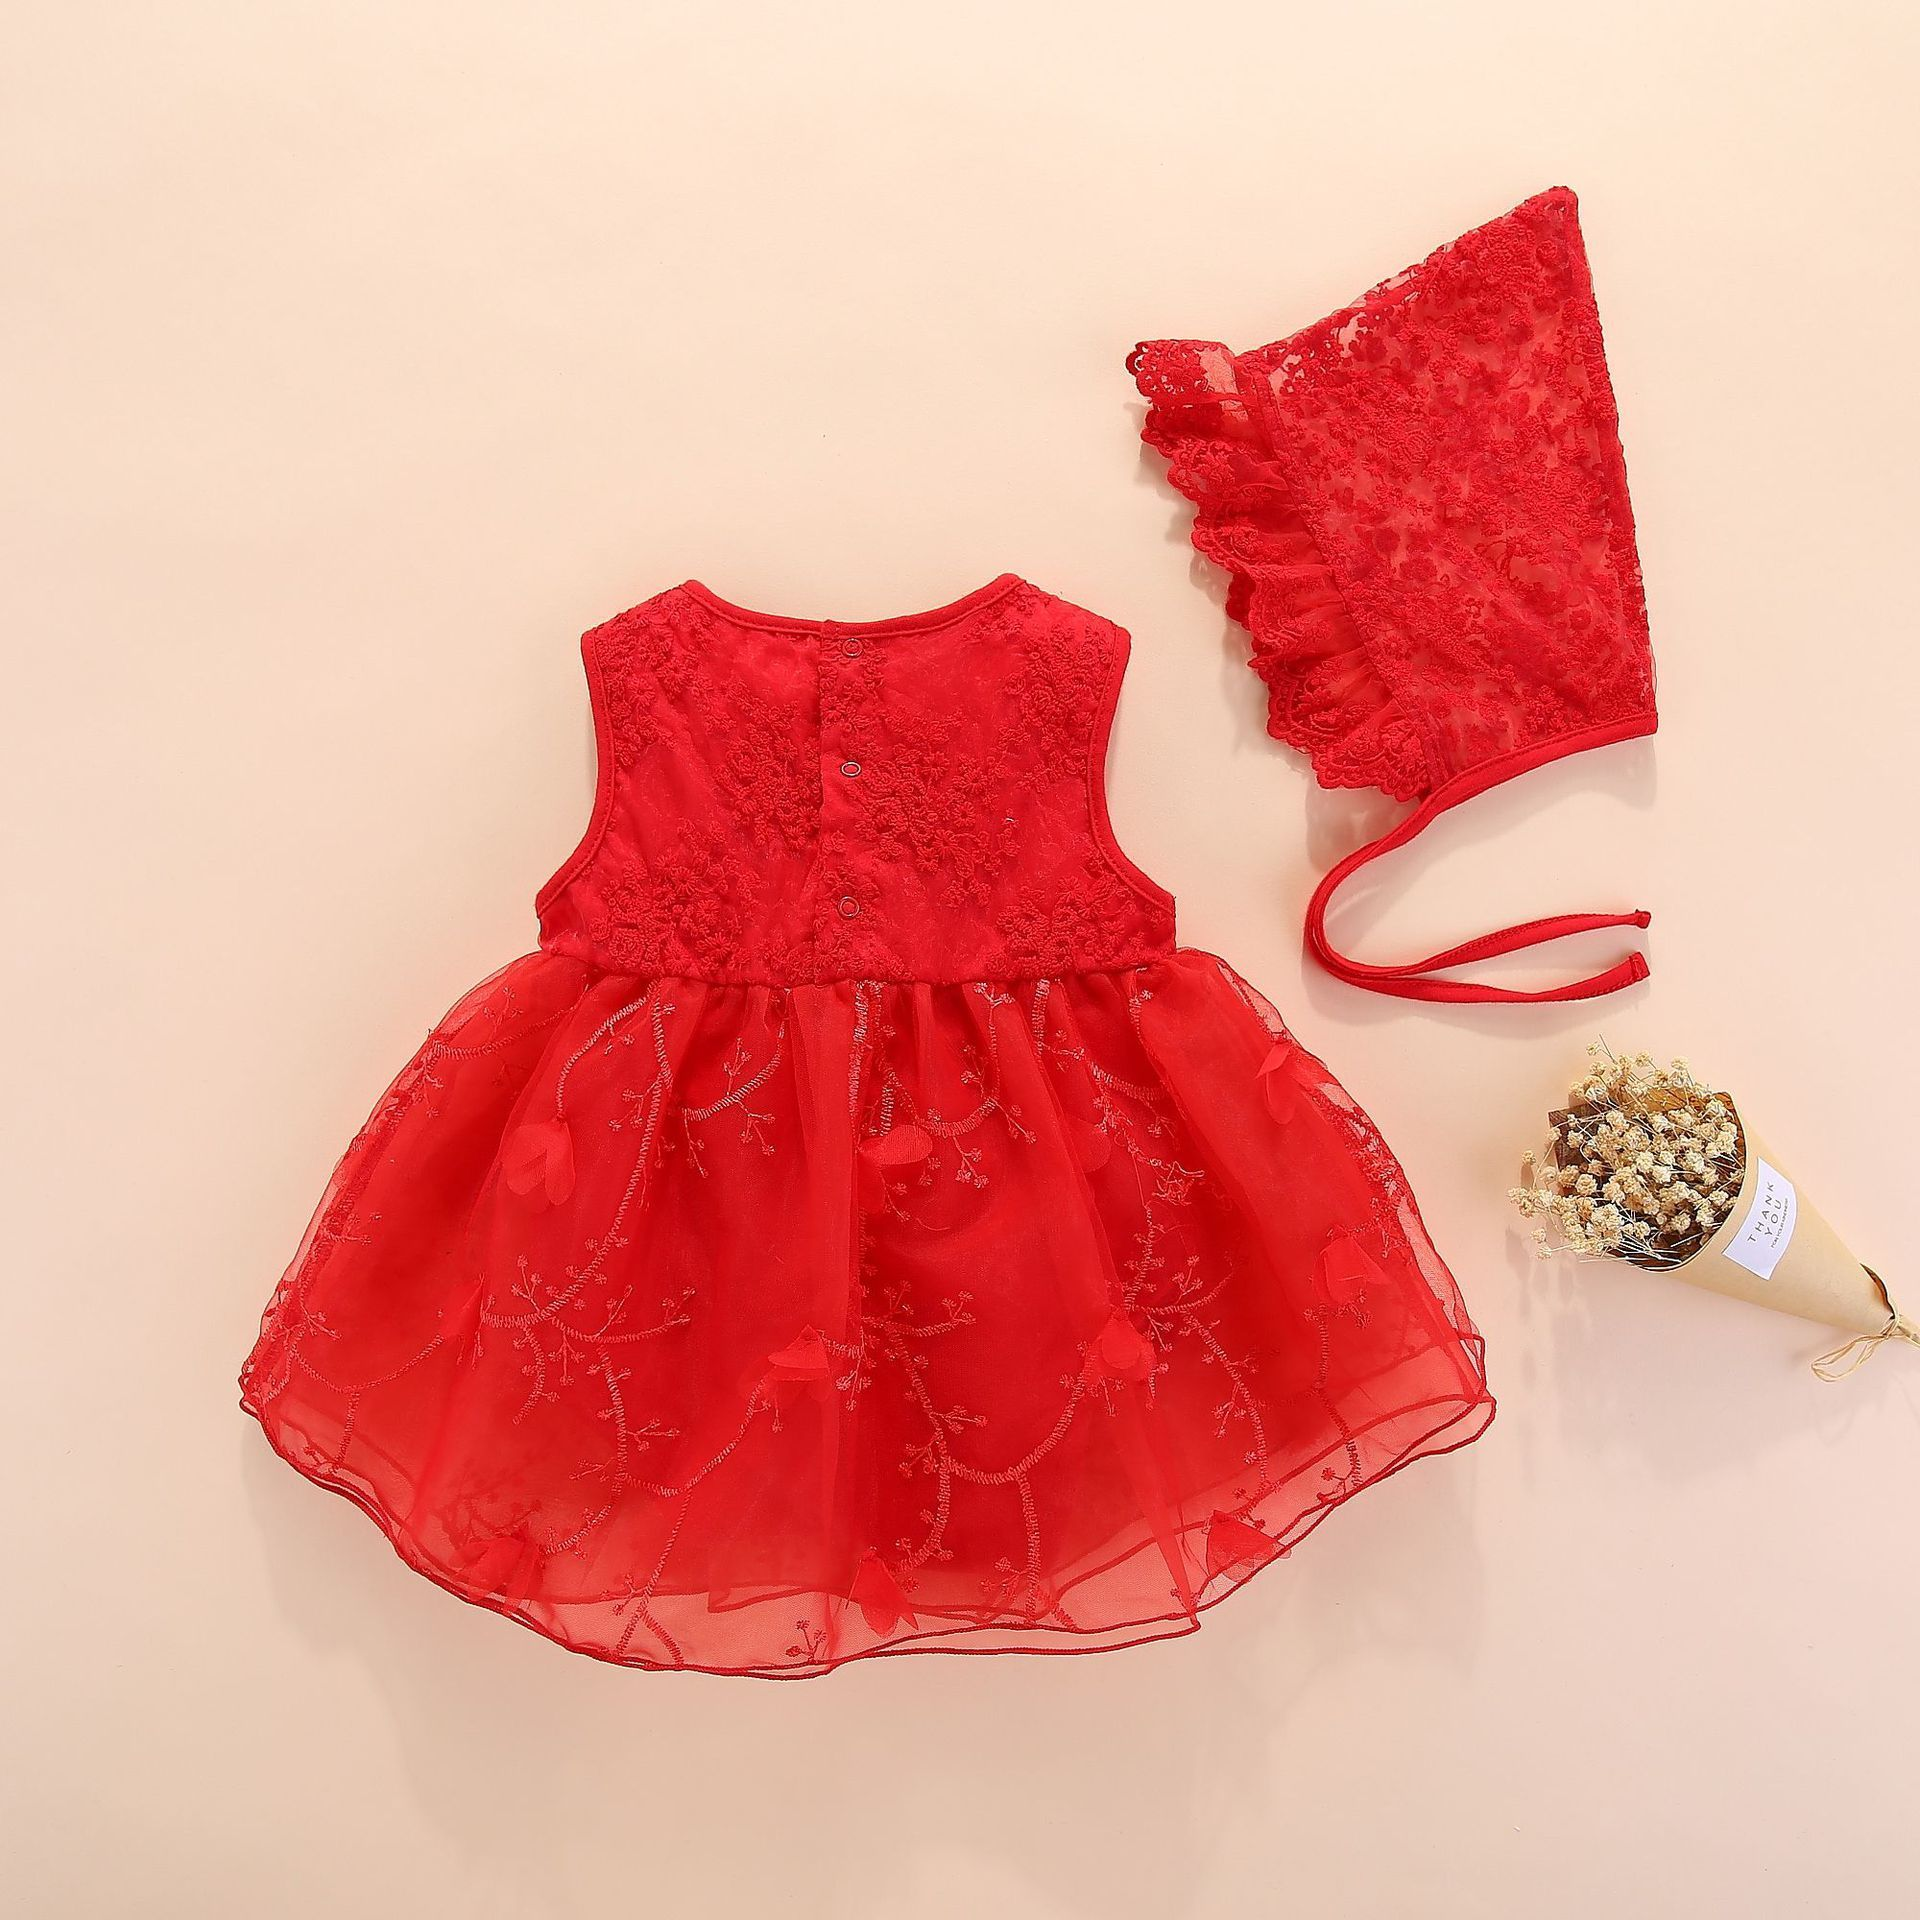 Newborn Baby Girl Dresses Clothes Summer With Flower 0 3 6 Month Baby Girl Dress For Party And Wedding Princess Style Clothes Y19061101